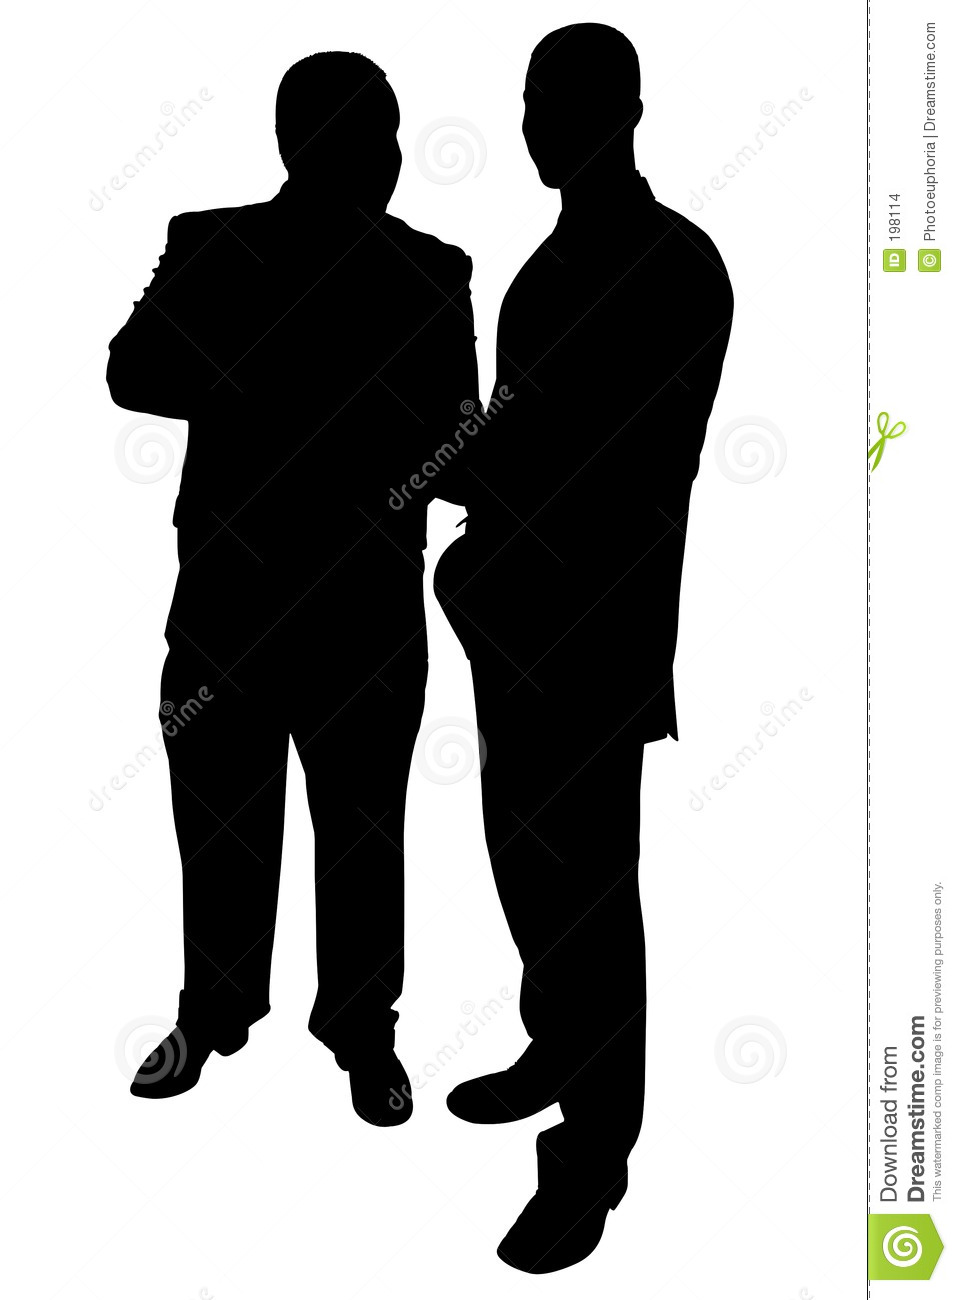 957x1300 Two People Talking Silhouette Clipart